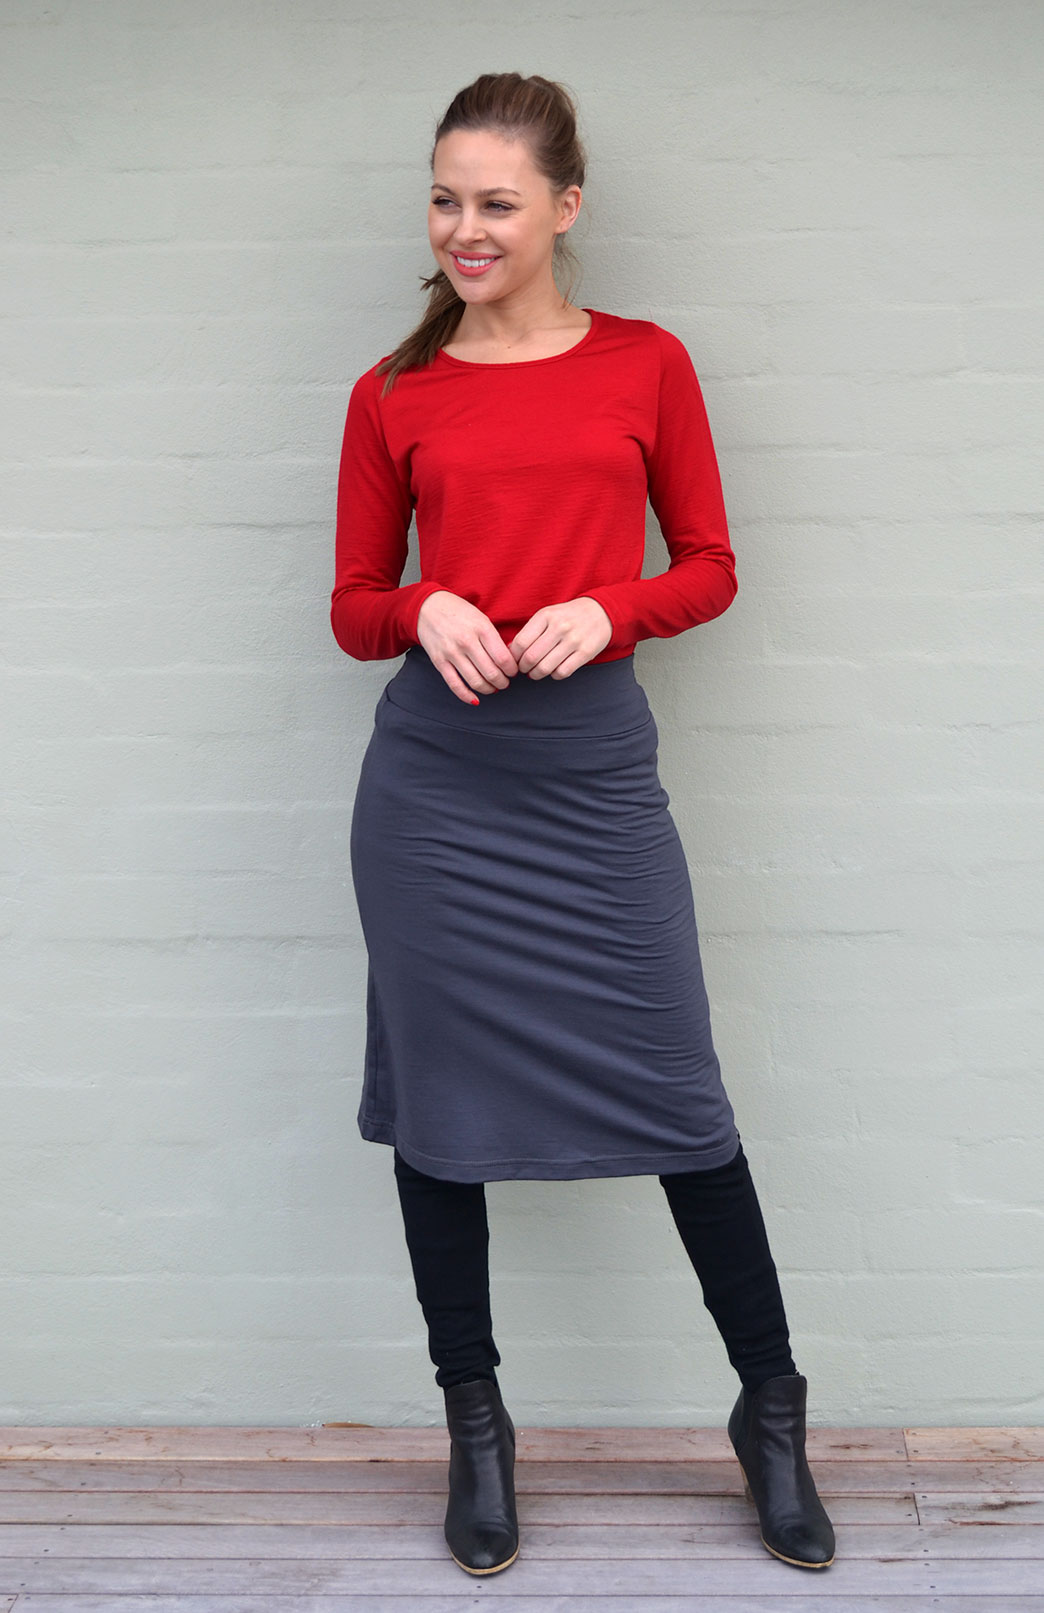 A-line Skirt - Women's Steel Grey Wool A-Line Skirt with elastic waistband - Smitten Merino Tasmania Australia